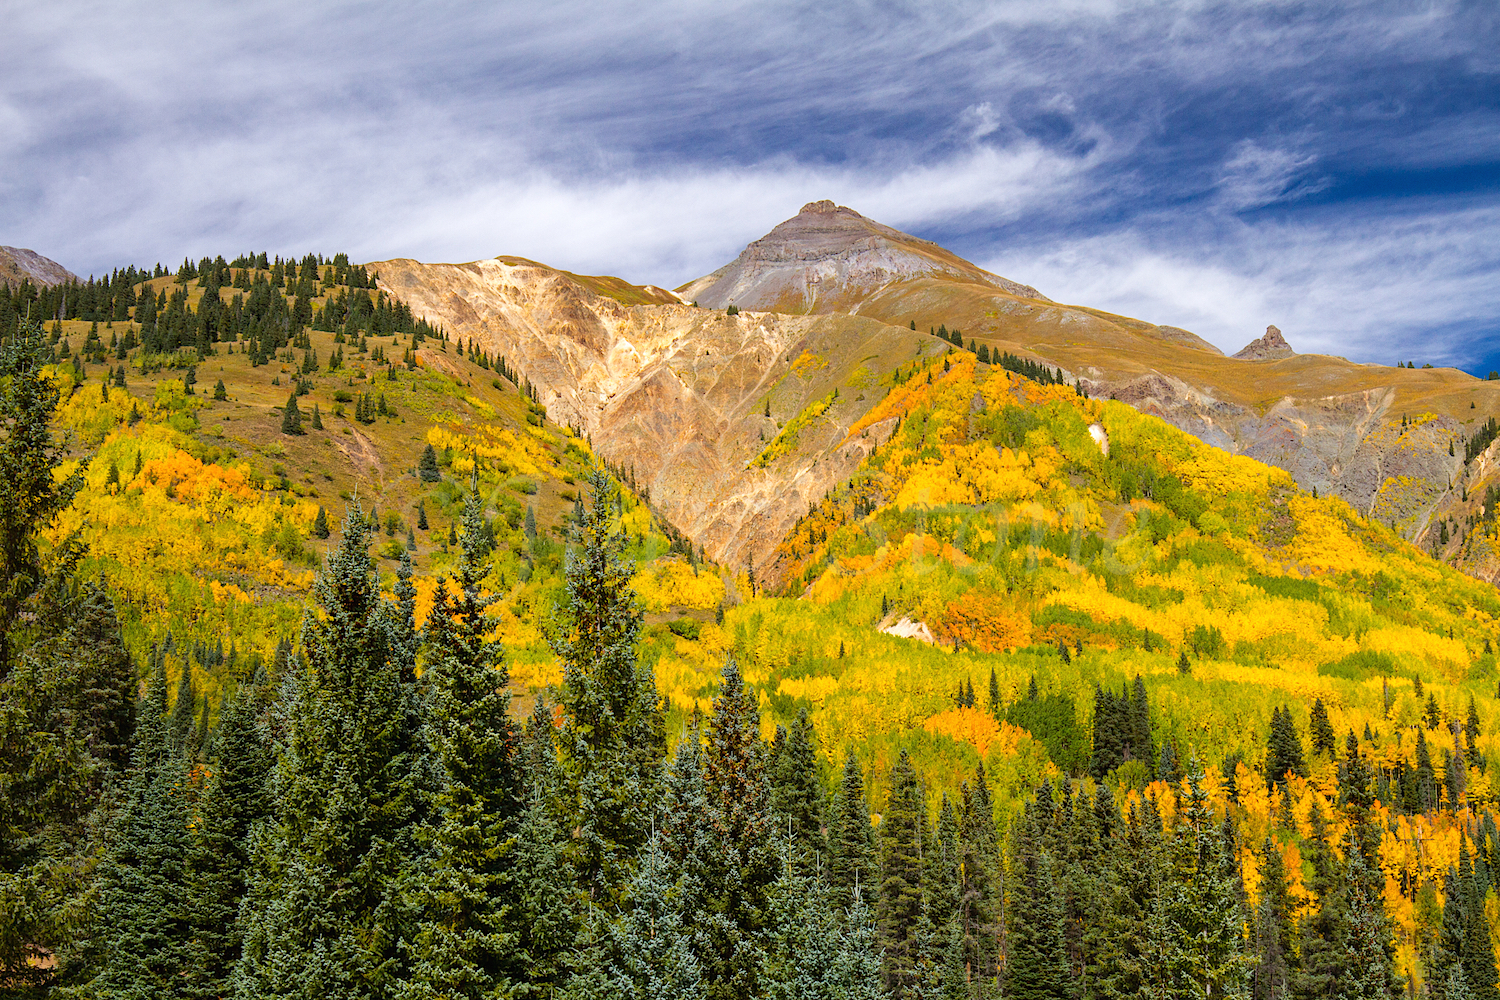 Red Mountain Fall Color, Image #9138